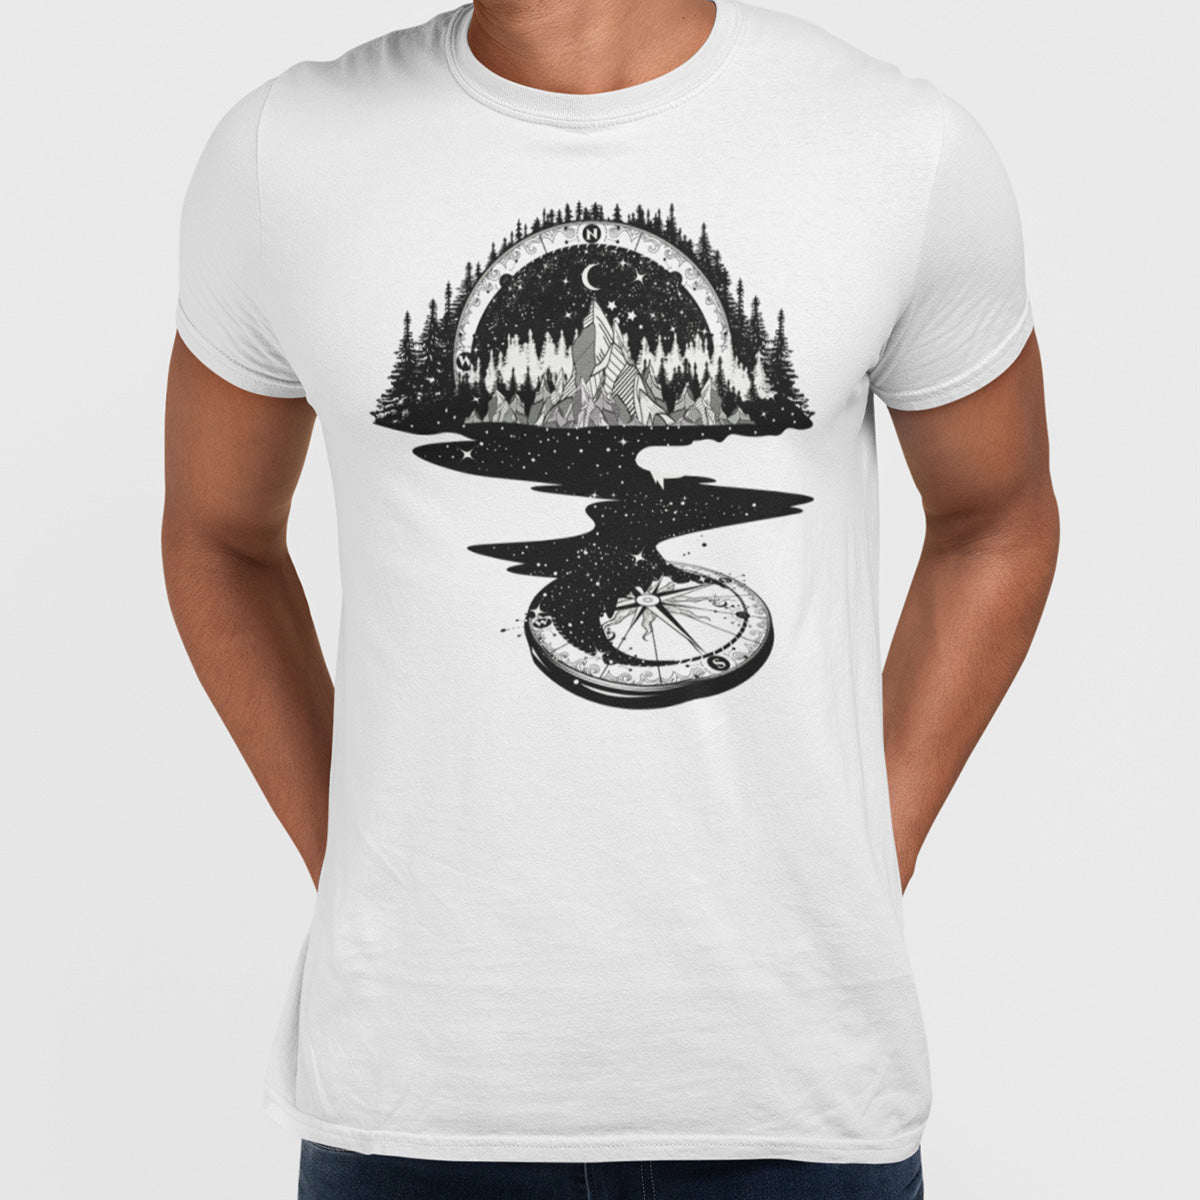 Surreal T-shirt of River Mountain & a Compass